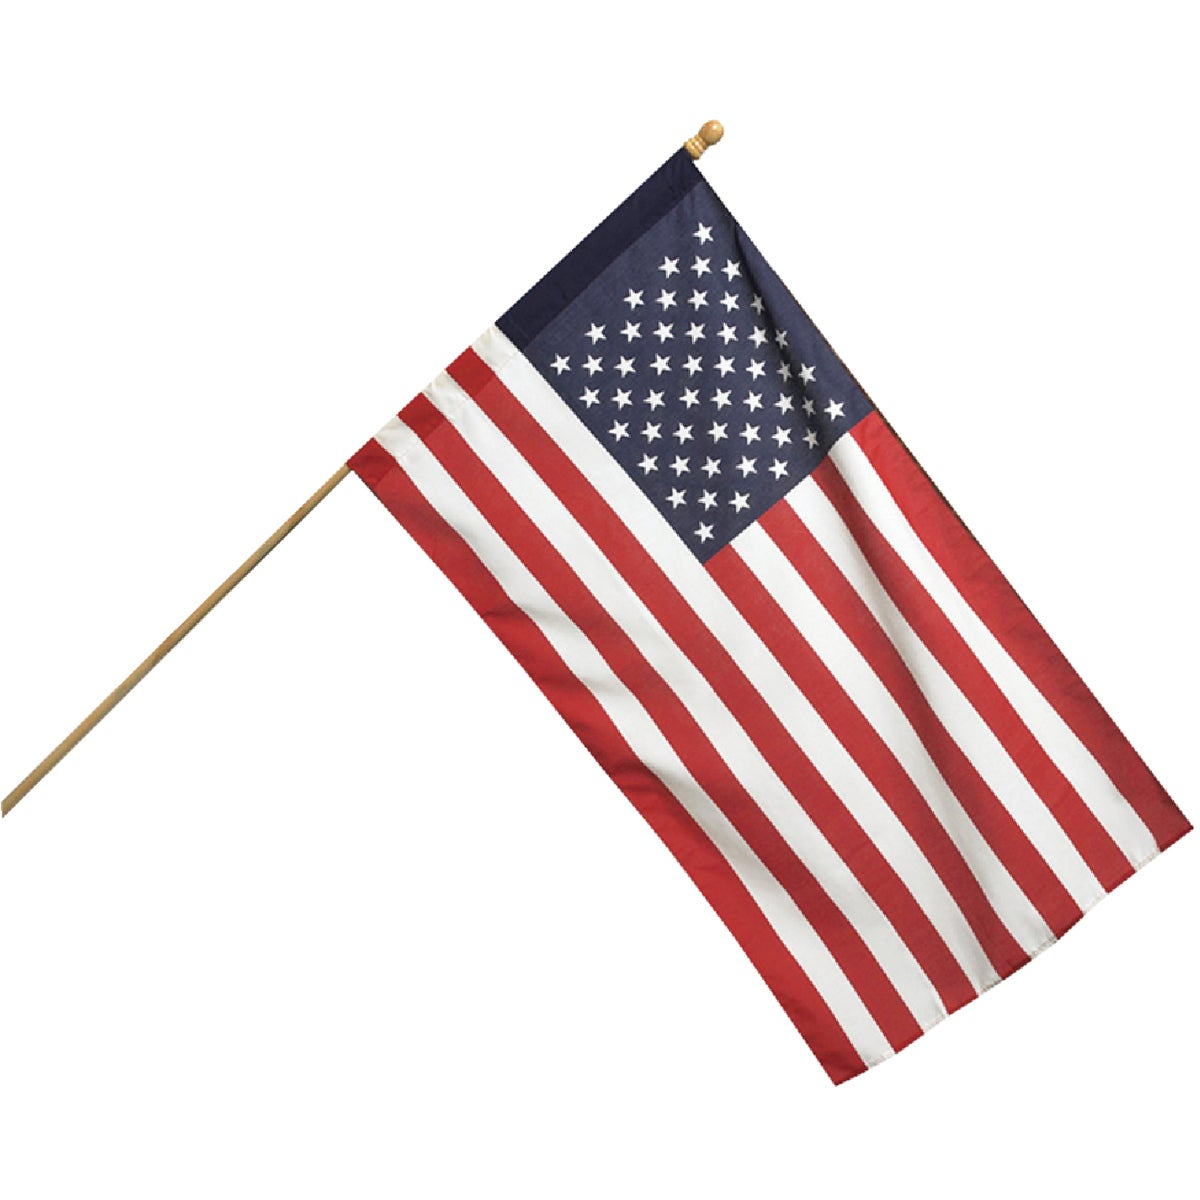 WOOD FLAGPOLE KIT - AA99050 by Valley Forge Flag